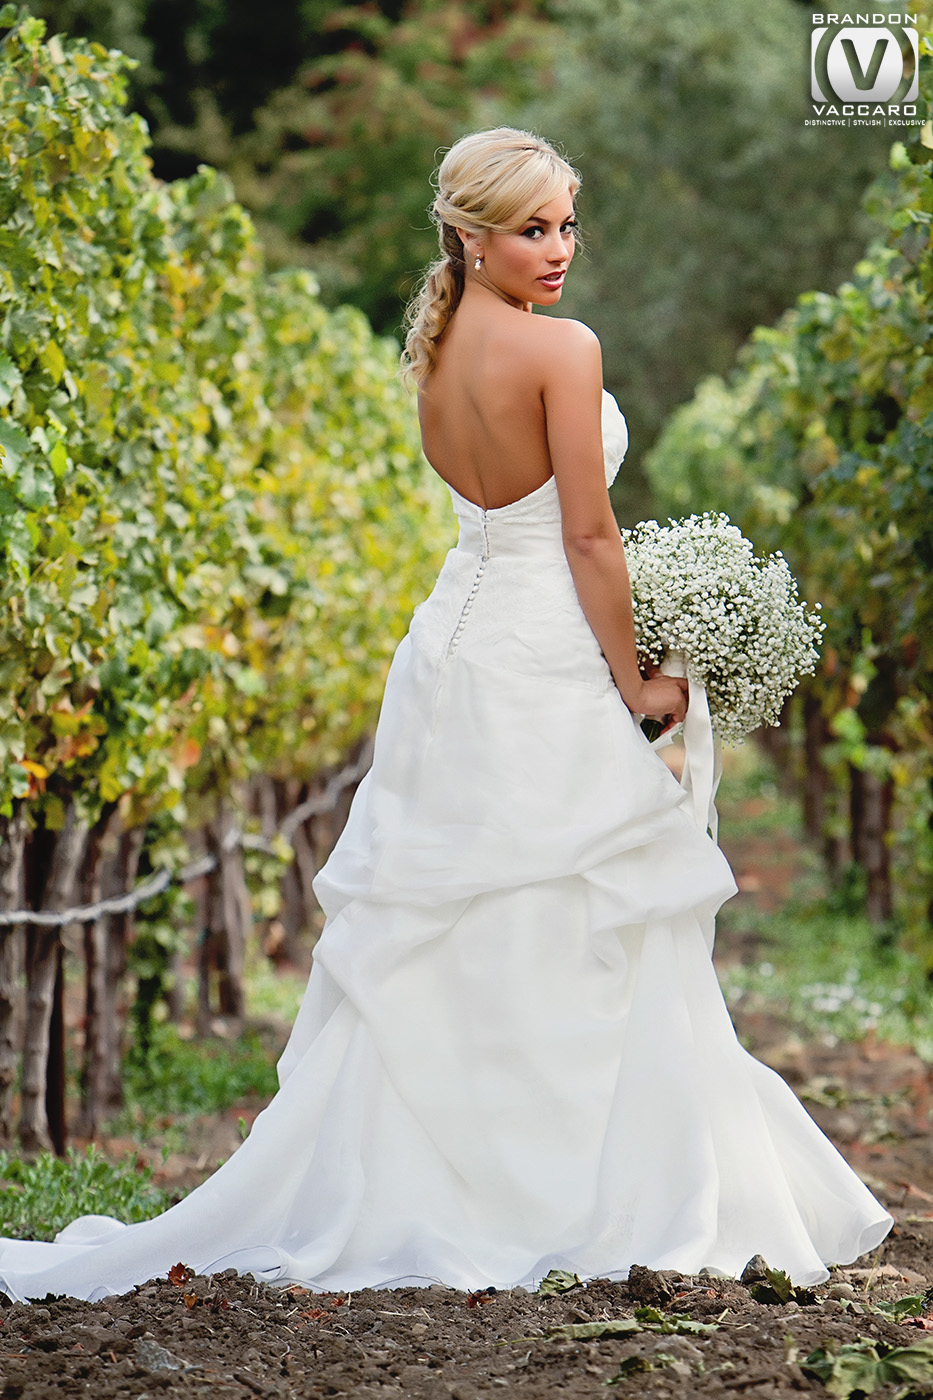 real-wedding-vintage-estate-yountville-bride.jpg